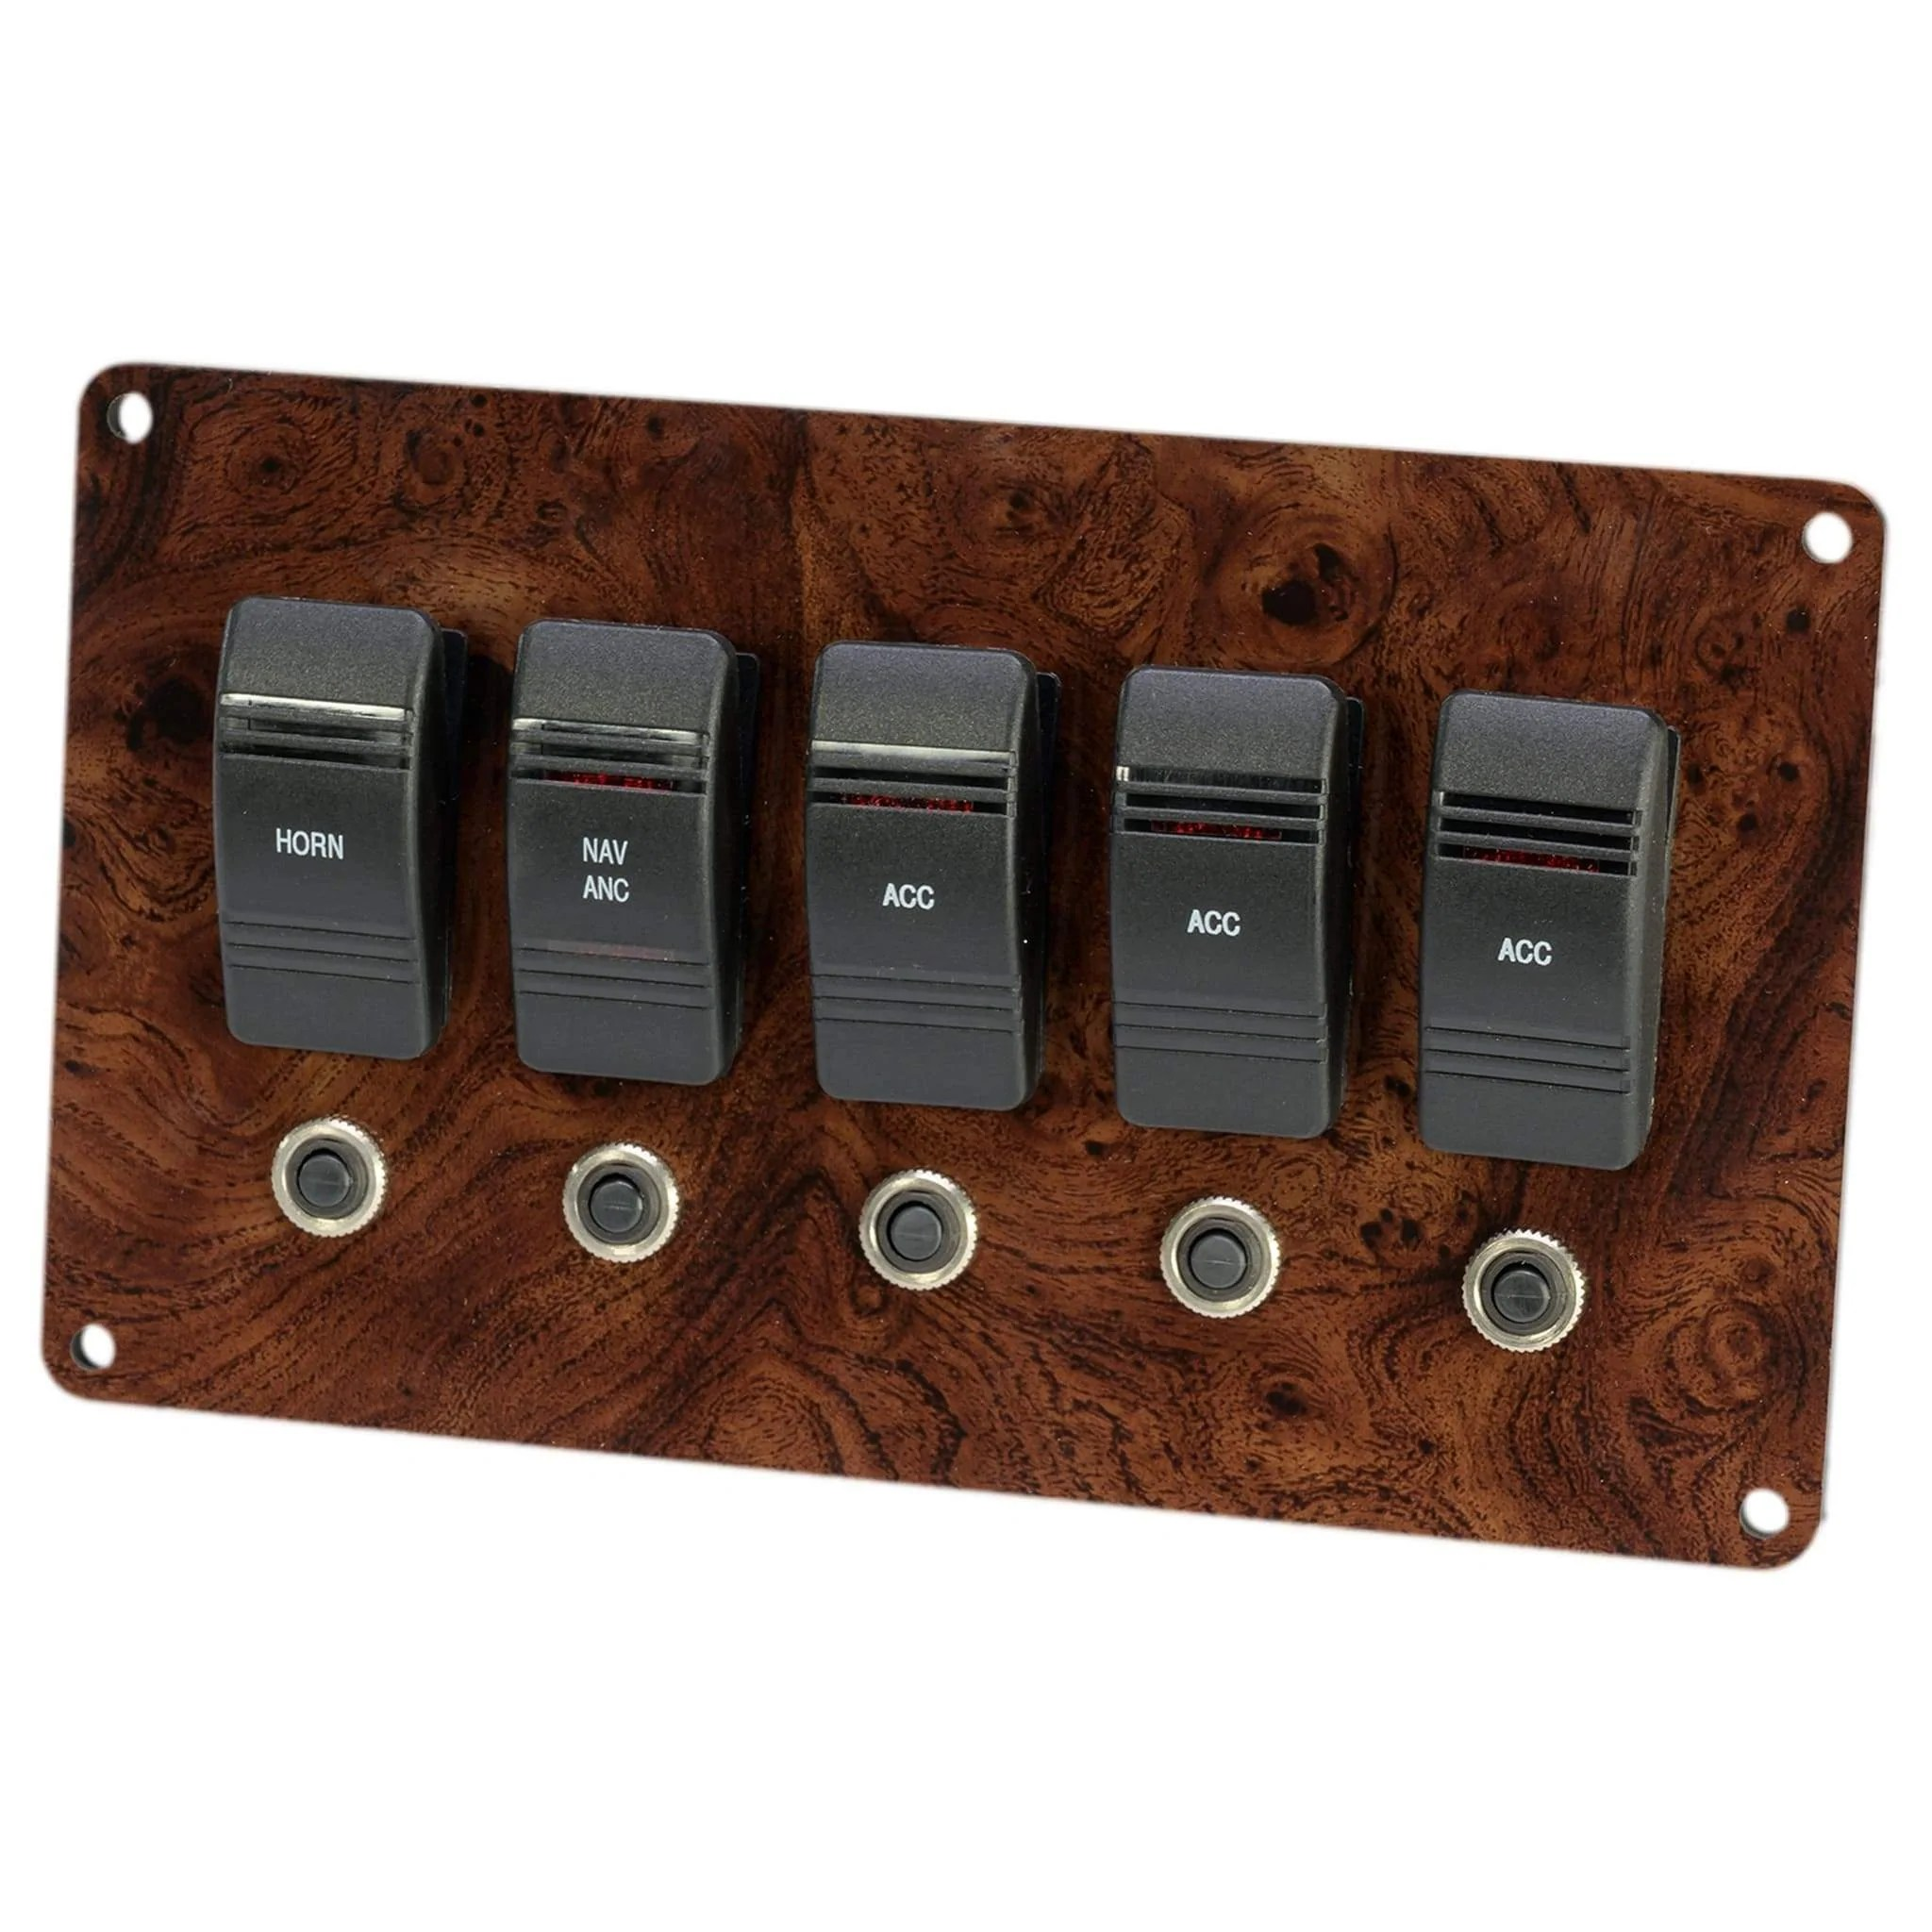 small pontoon boat switch panel pontoonstuff com pontoon boat wiring harness pontoonstuffcom [ 2048 x 2048 Pixel ]